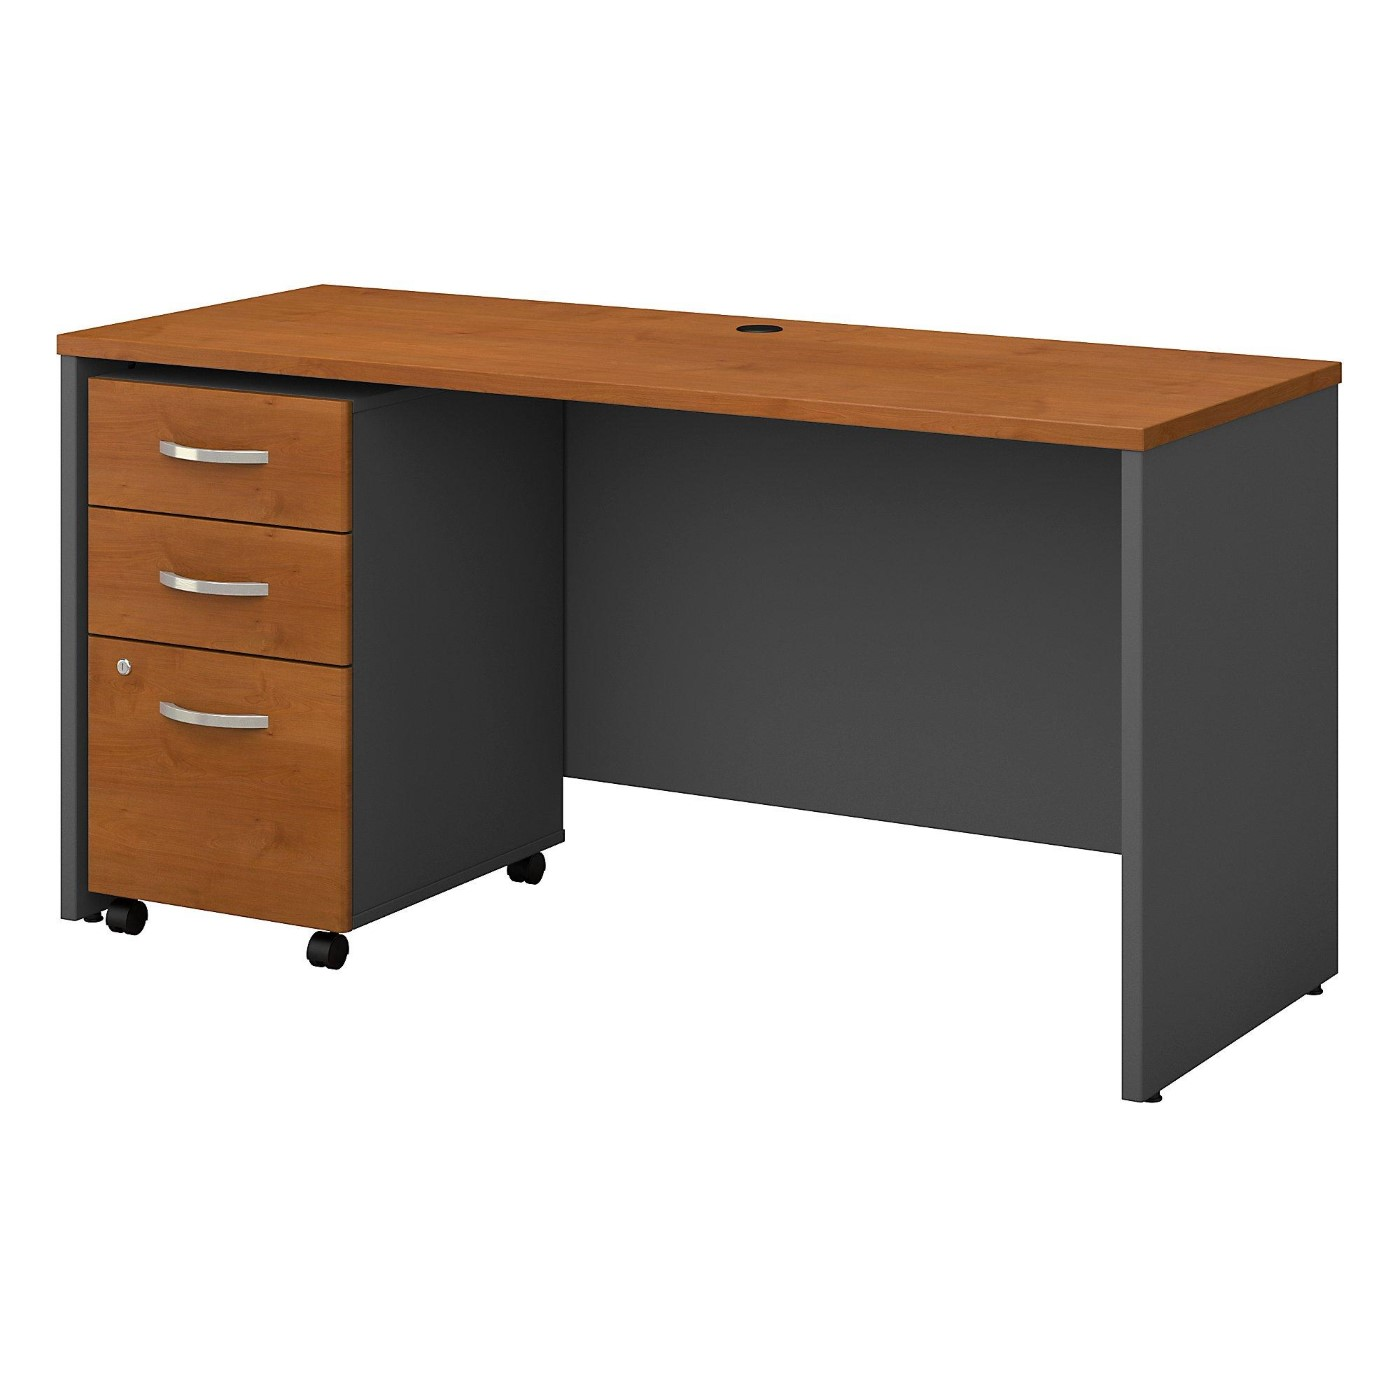 <font color=#c60><b>BUSH BUSINESS FURNITURE SERIES C 60W X 24D OFFICE DESK WITH MOBILE FILE CABINET. FREE SHIPPING</font></b>